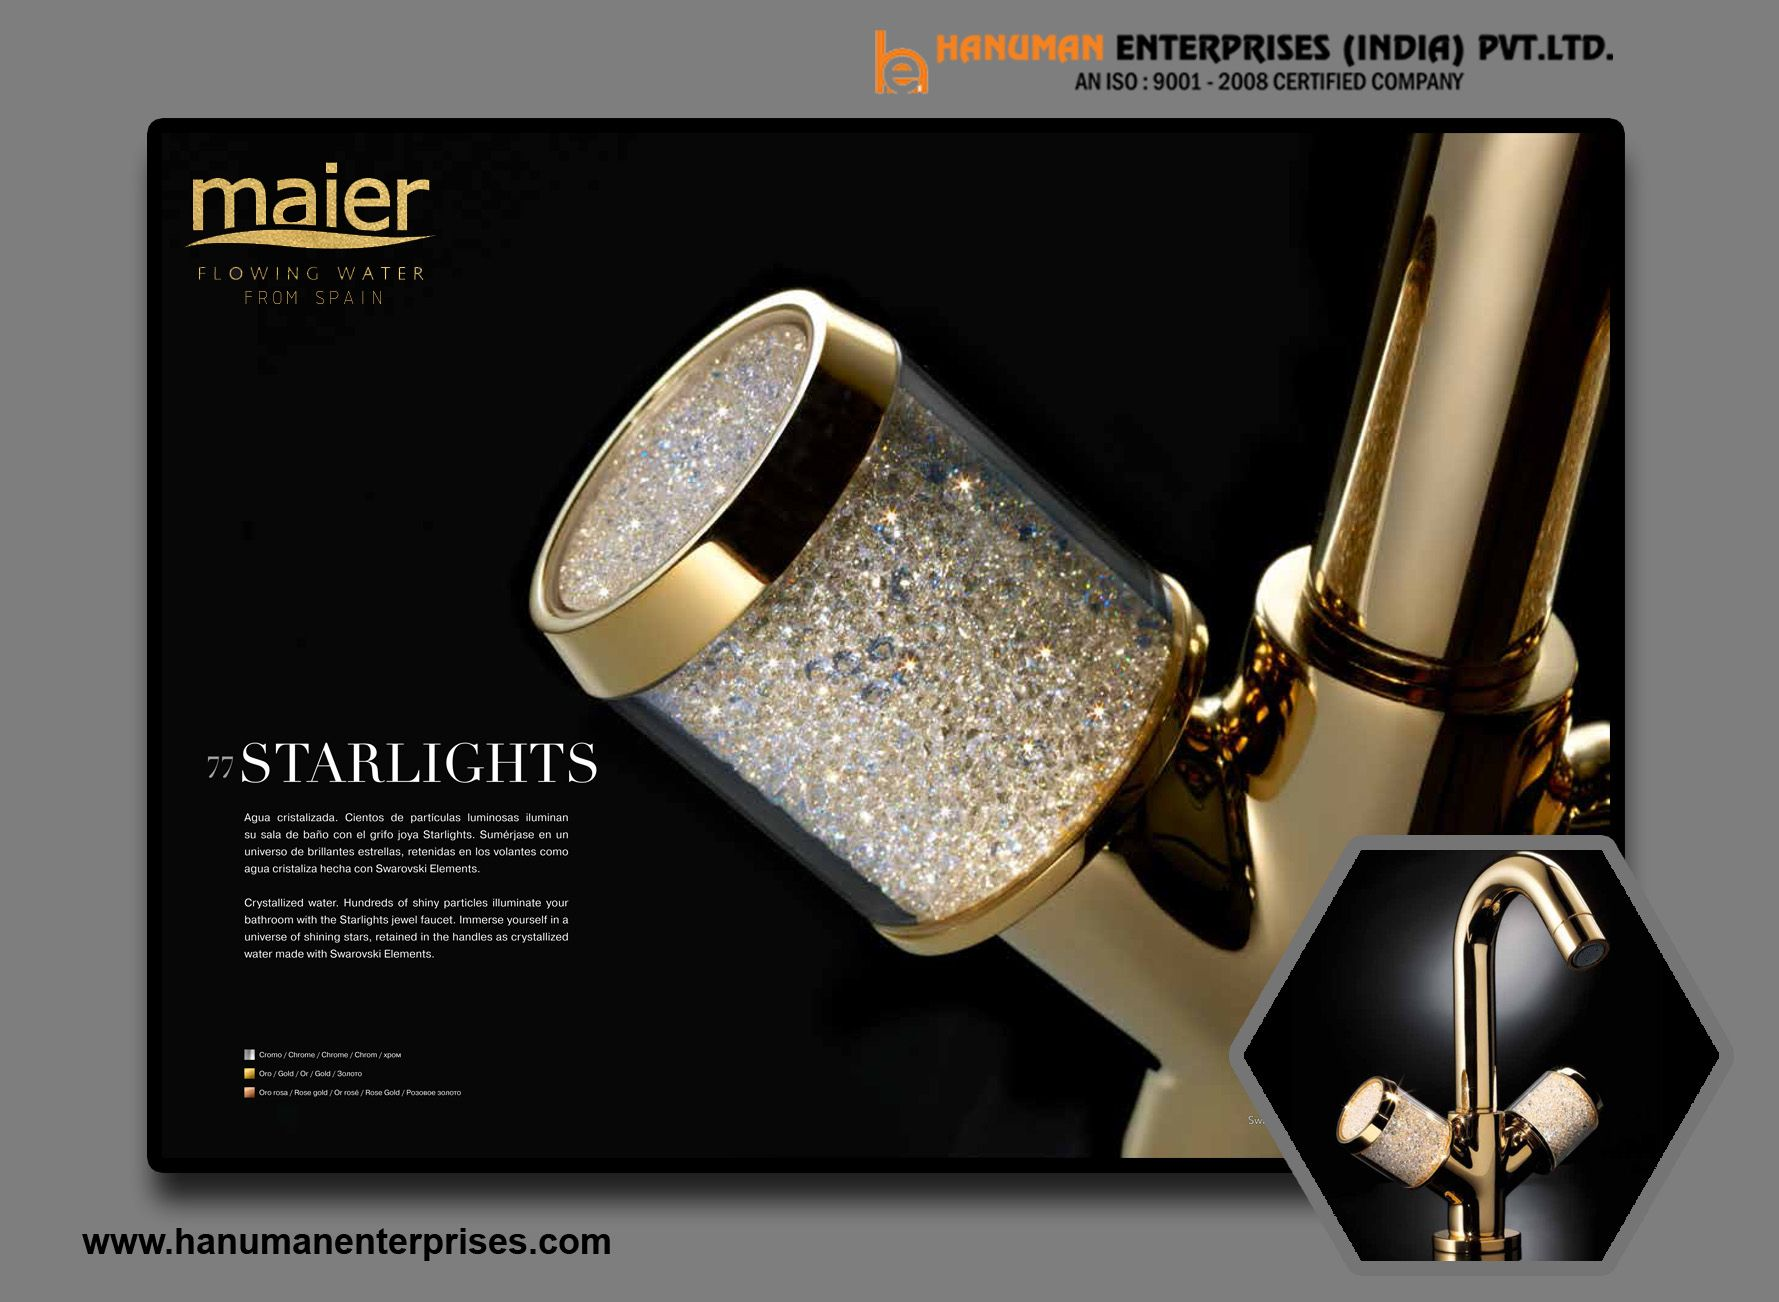 Starlights by Maier. The ultimate in